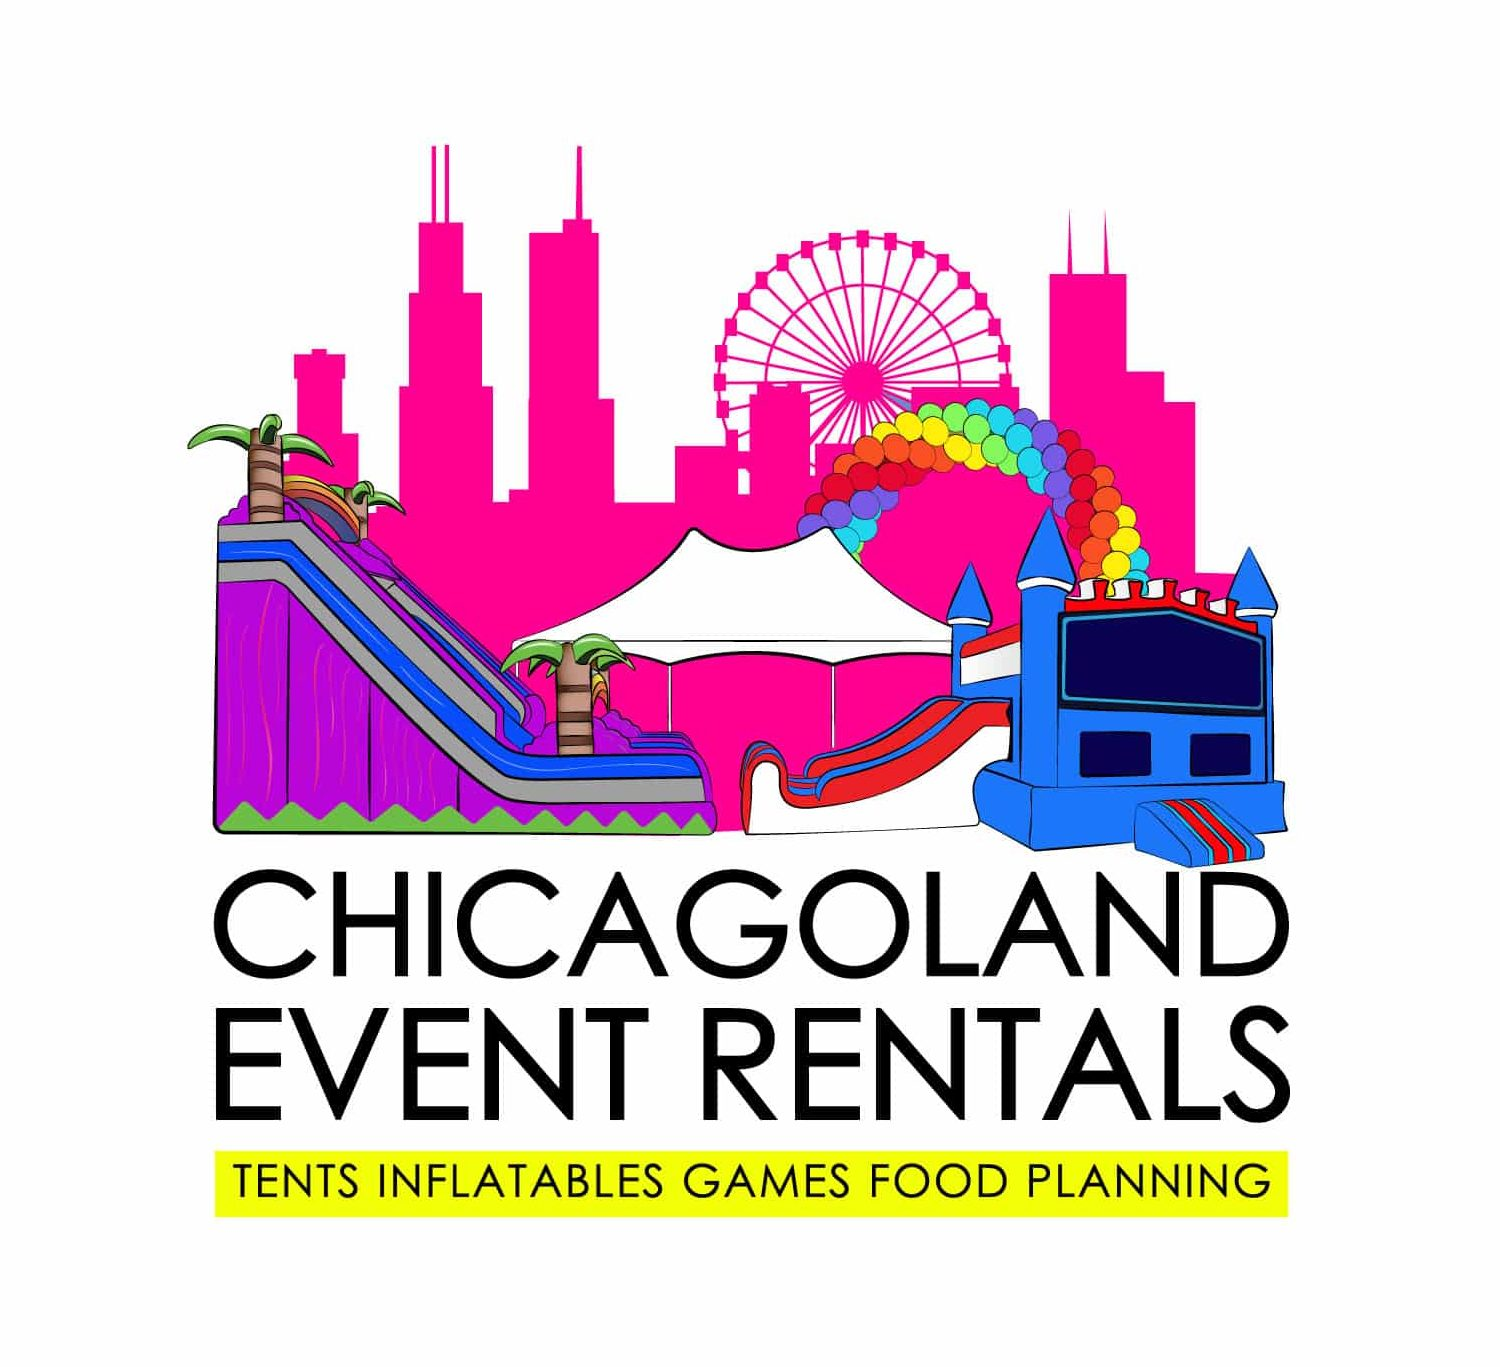 Chicagoland Event Rentals - Wheaton - Chicago - Square Logo - JPG